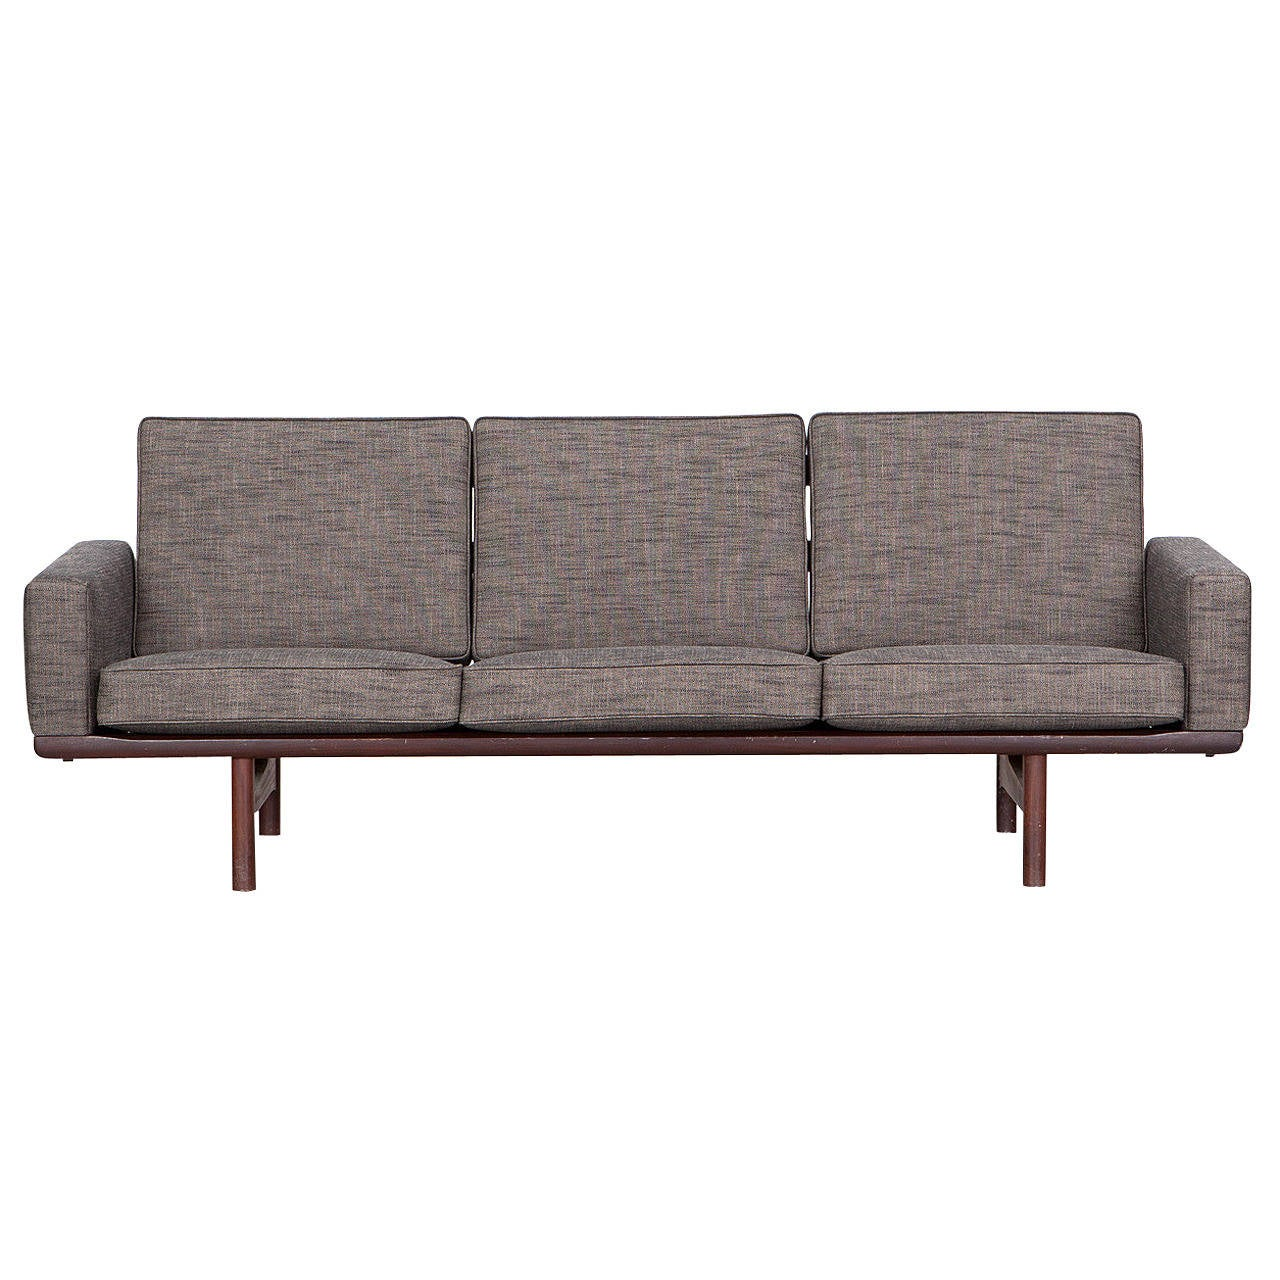 hans wegner three seat sofa new upholstery for sale at 1stdibs. Black Bedroom Furniture Sets. Home Design Ideas